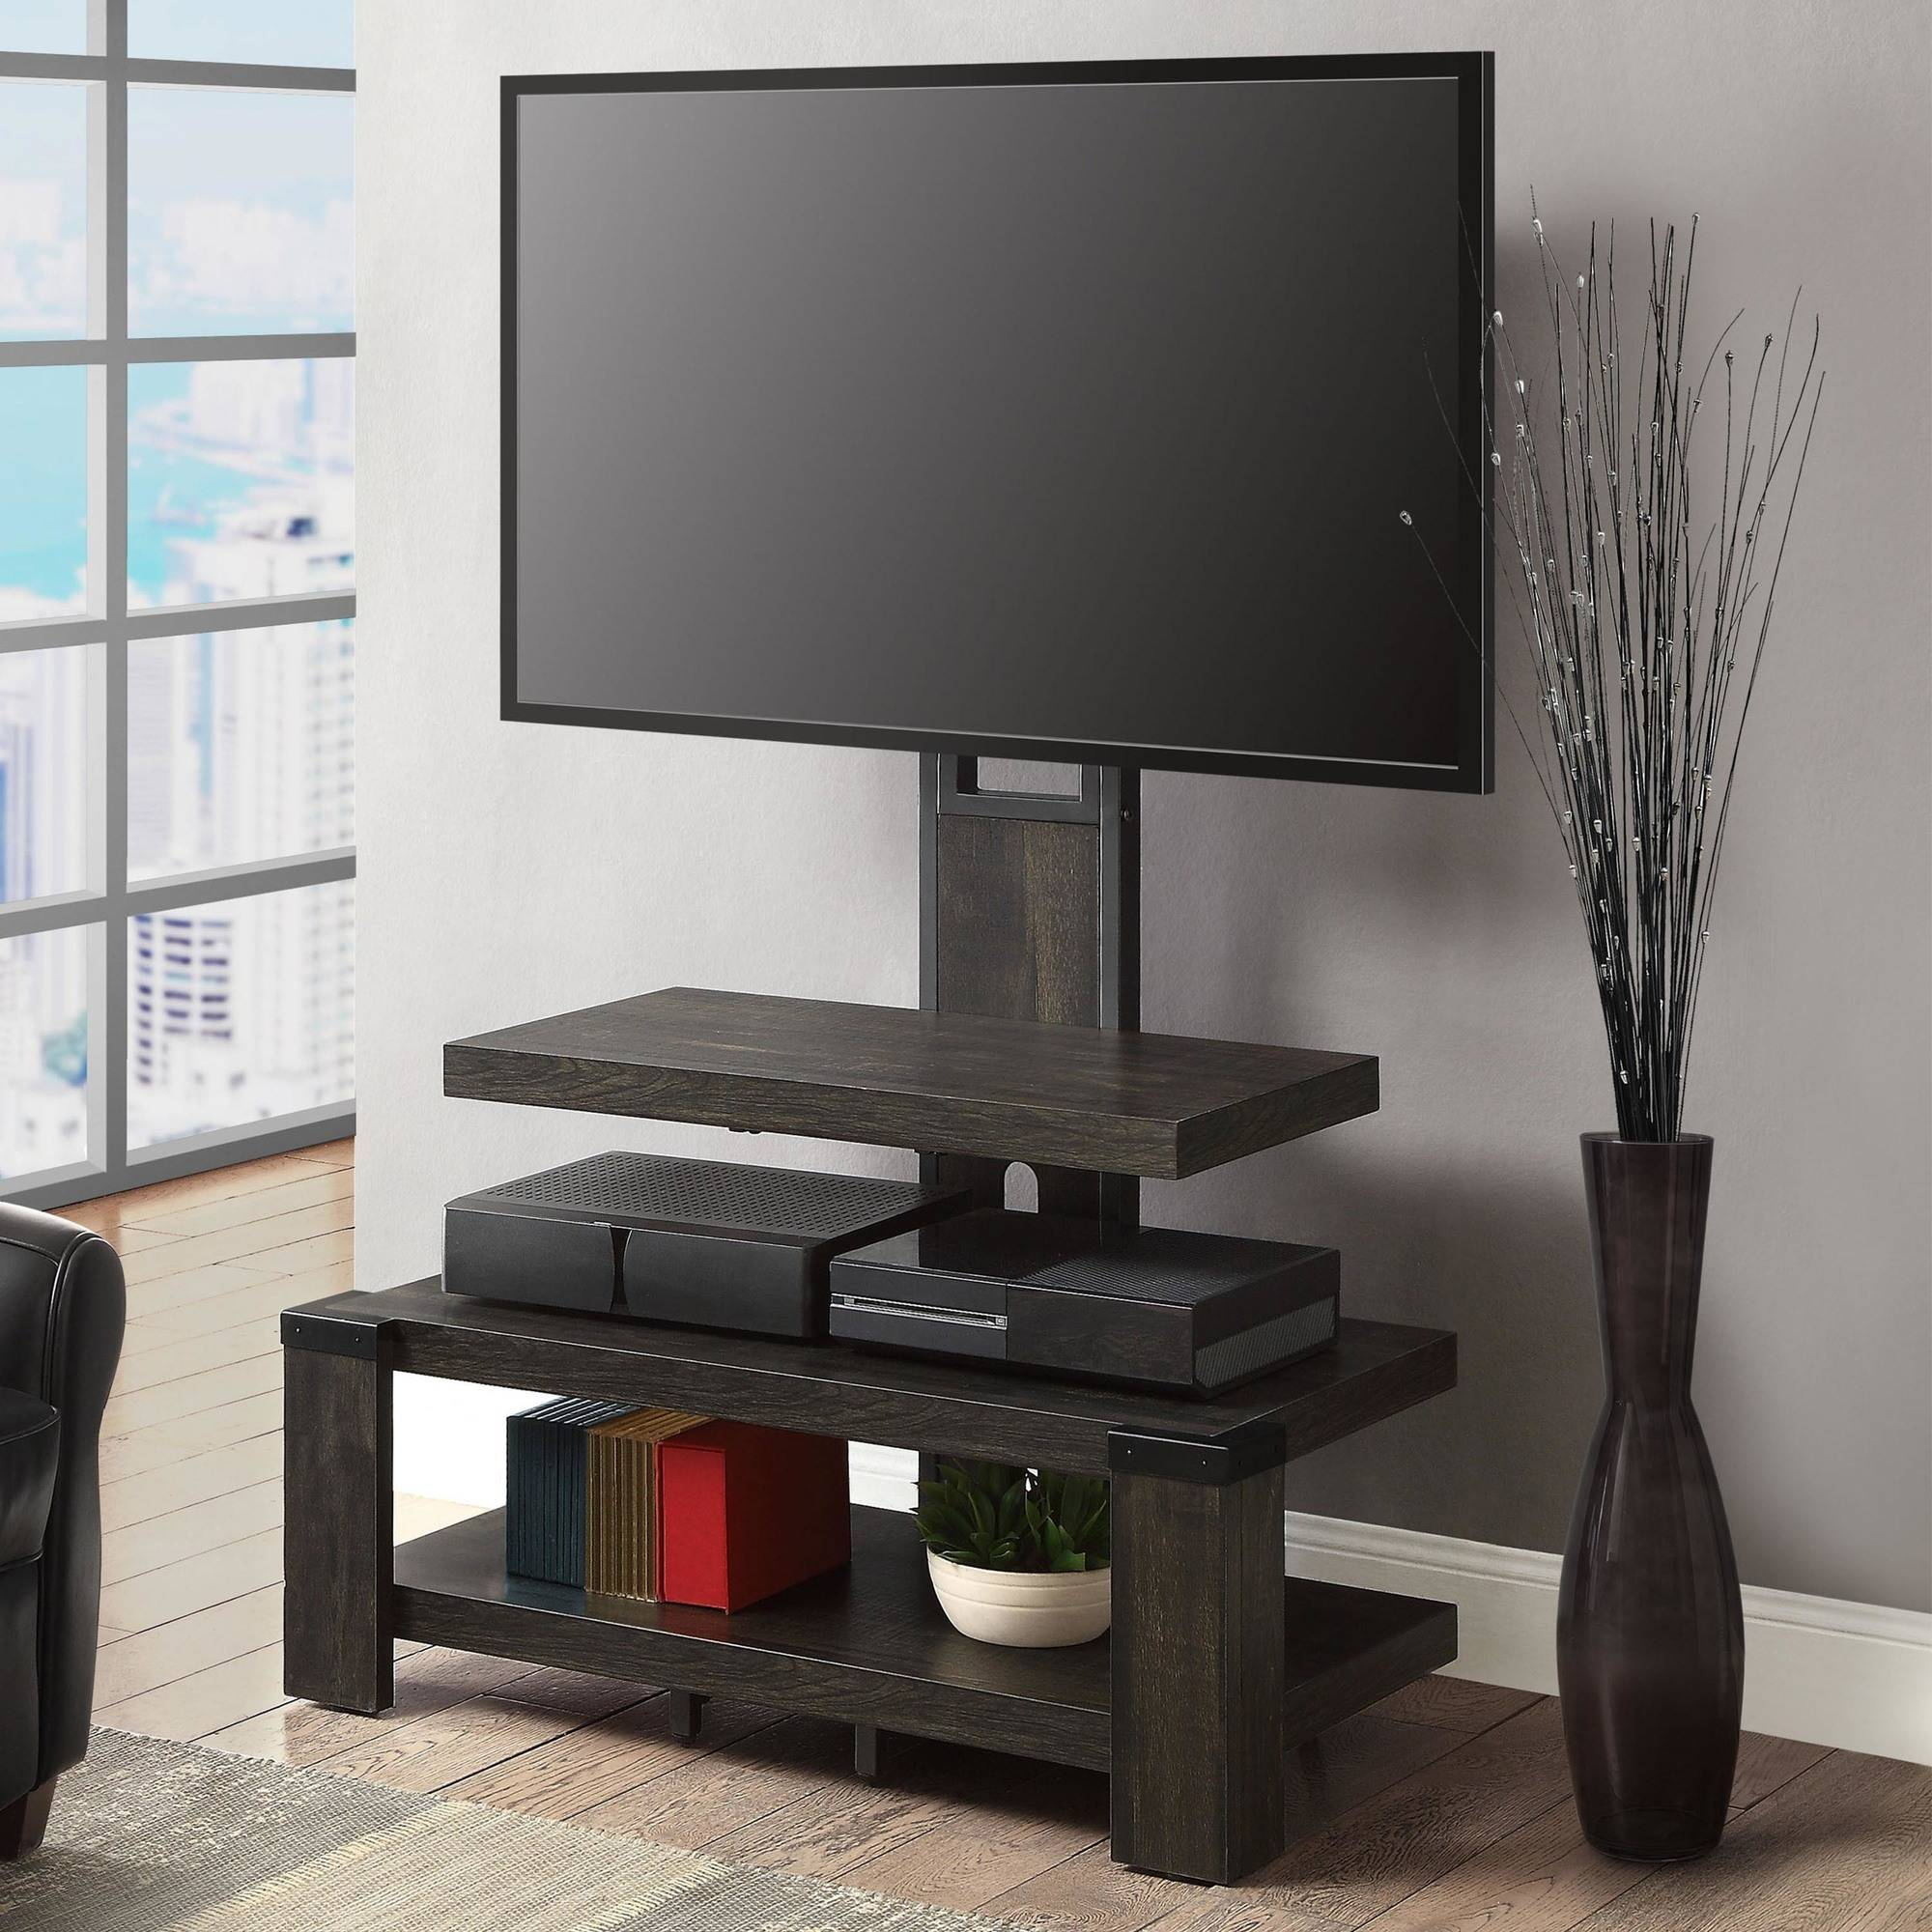 stand shelving mount screen mounted appealing wall entertainment with fresh and for shelves xfile pics of trend dvd shelf flat shocking tv unit inspiration